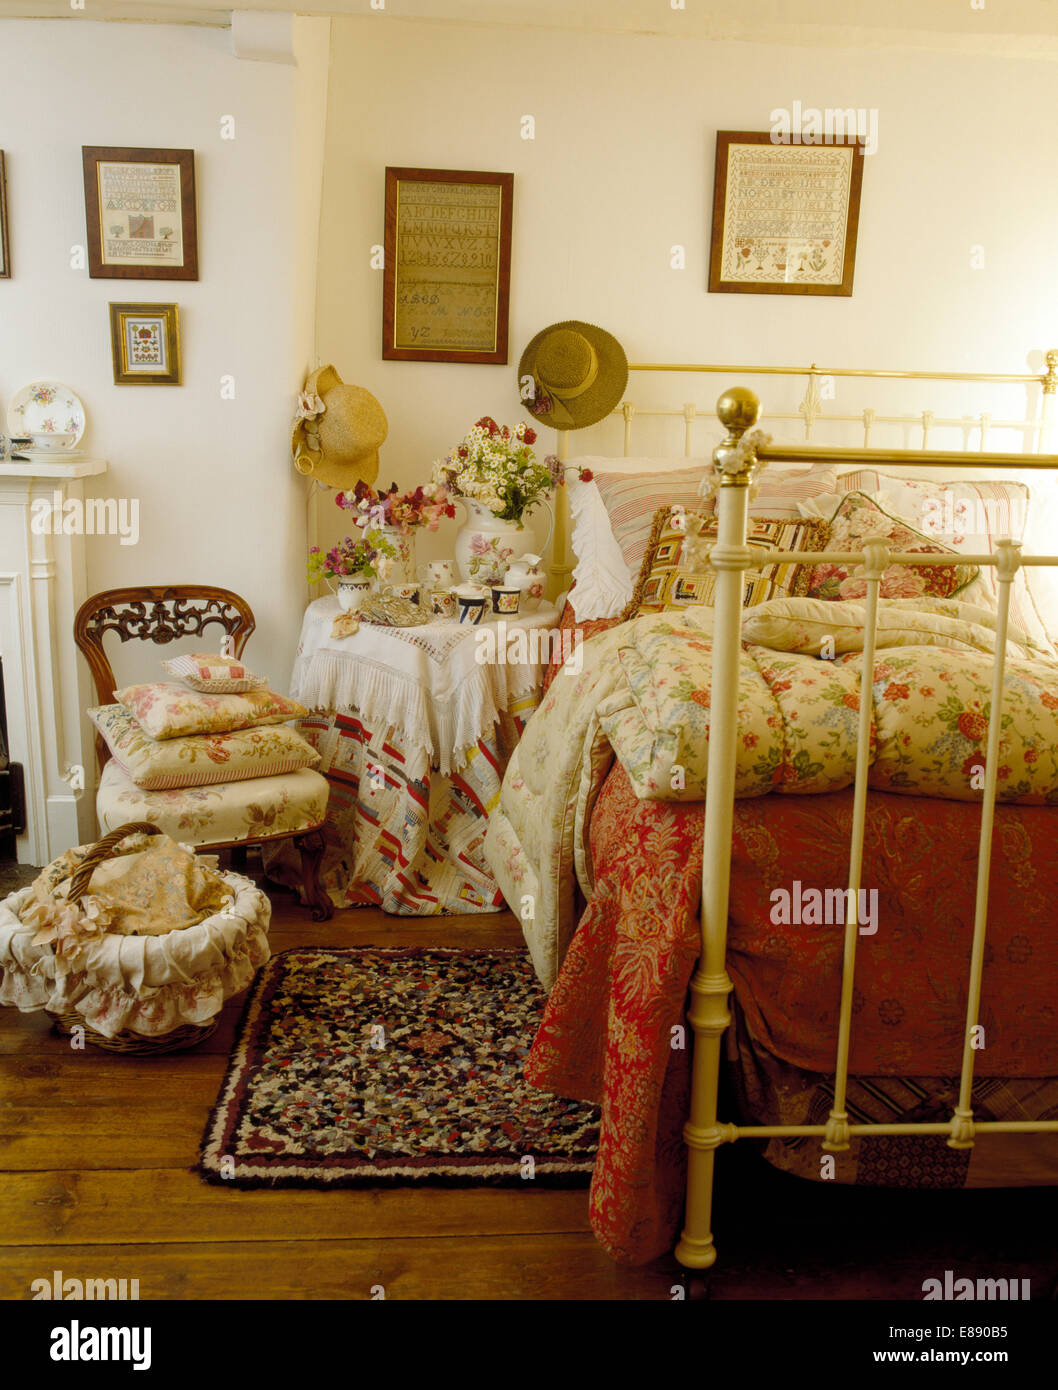 Cottage Bedroom With Floral Quilt On White Wrought Iron Bed And Small Victorian  Chair Piled With Floral Cushions